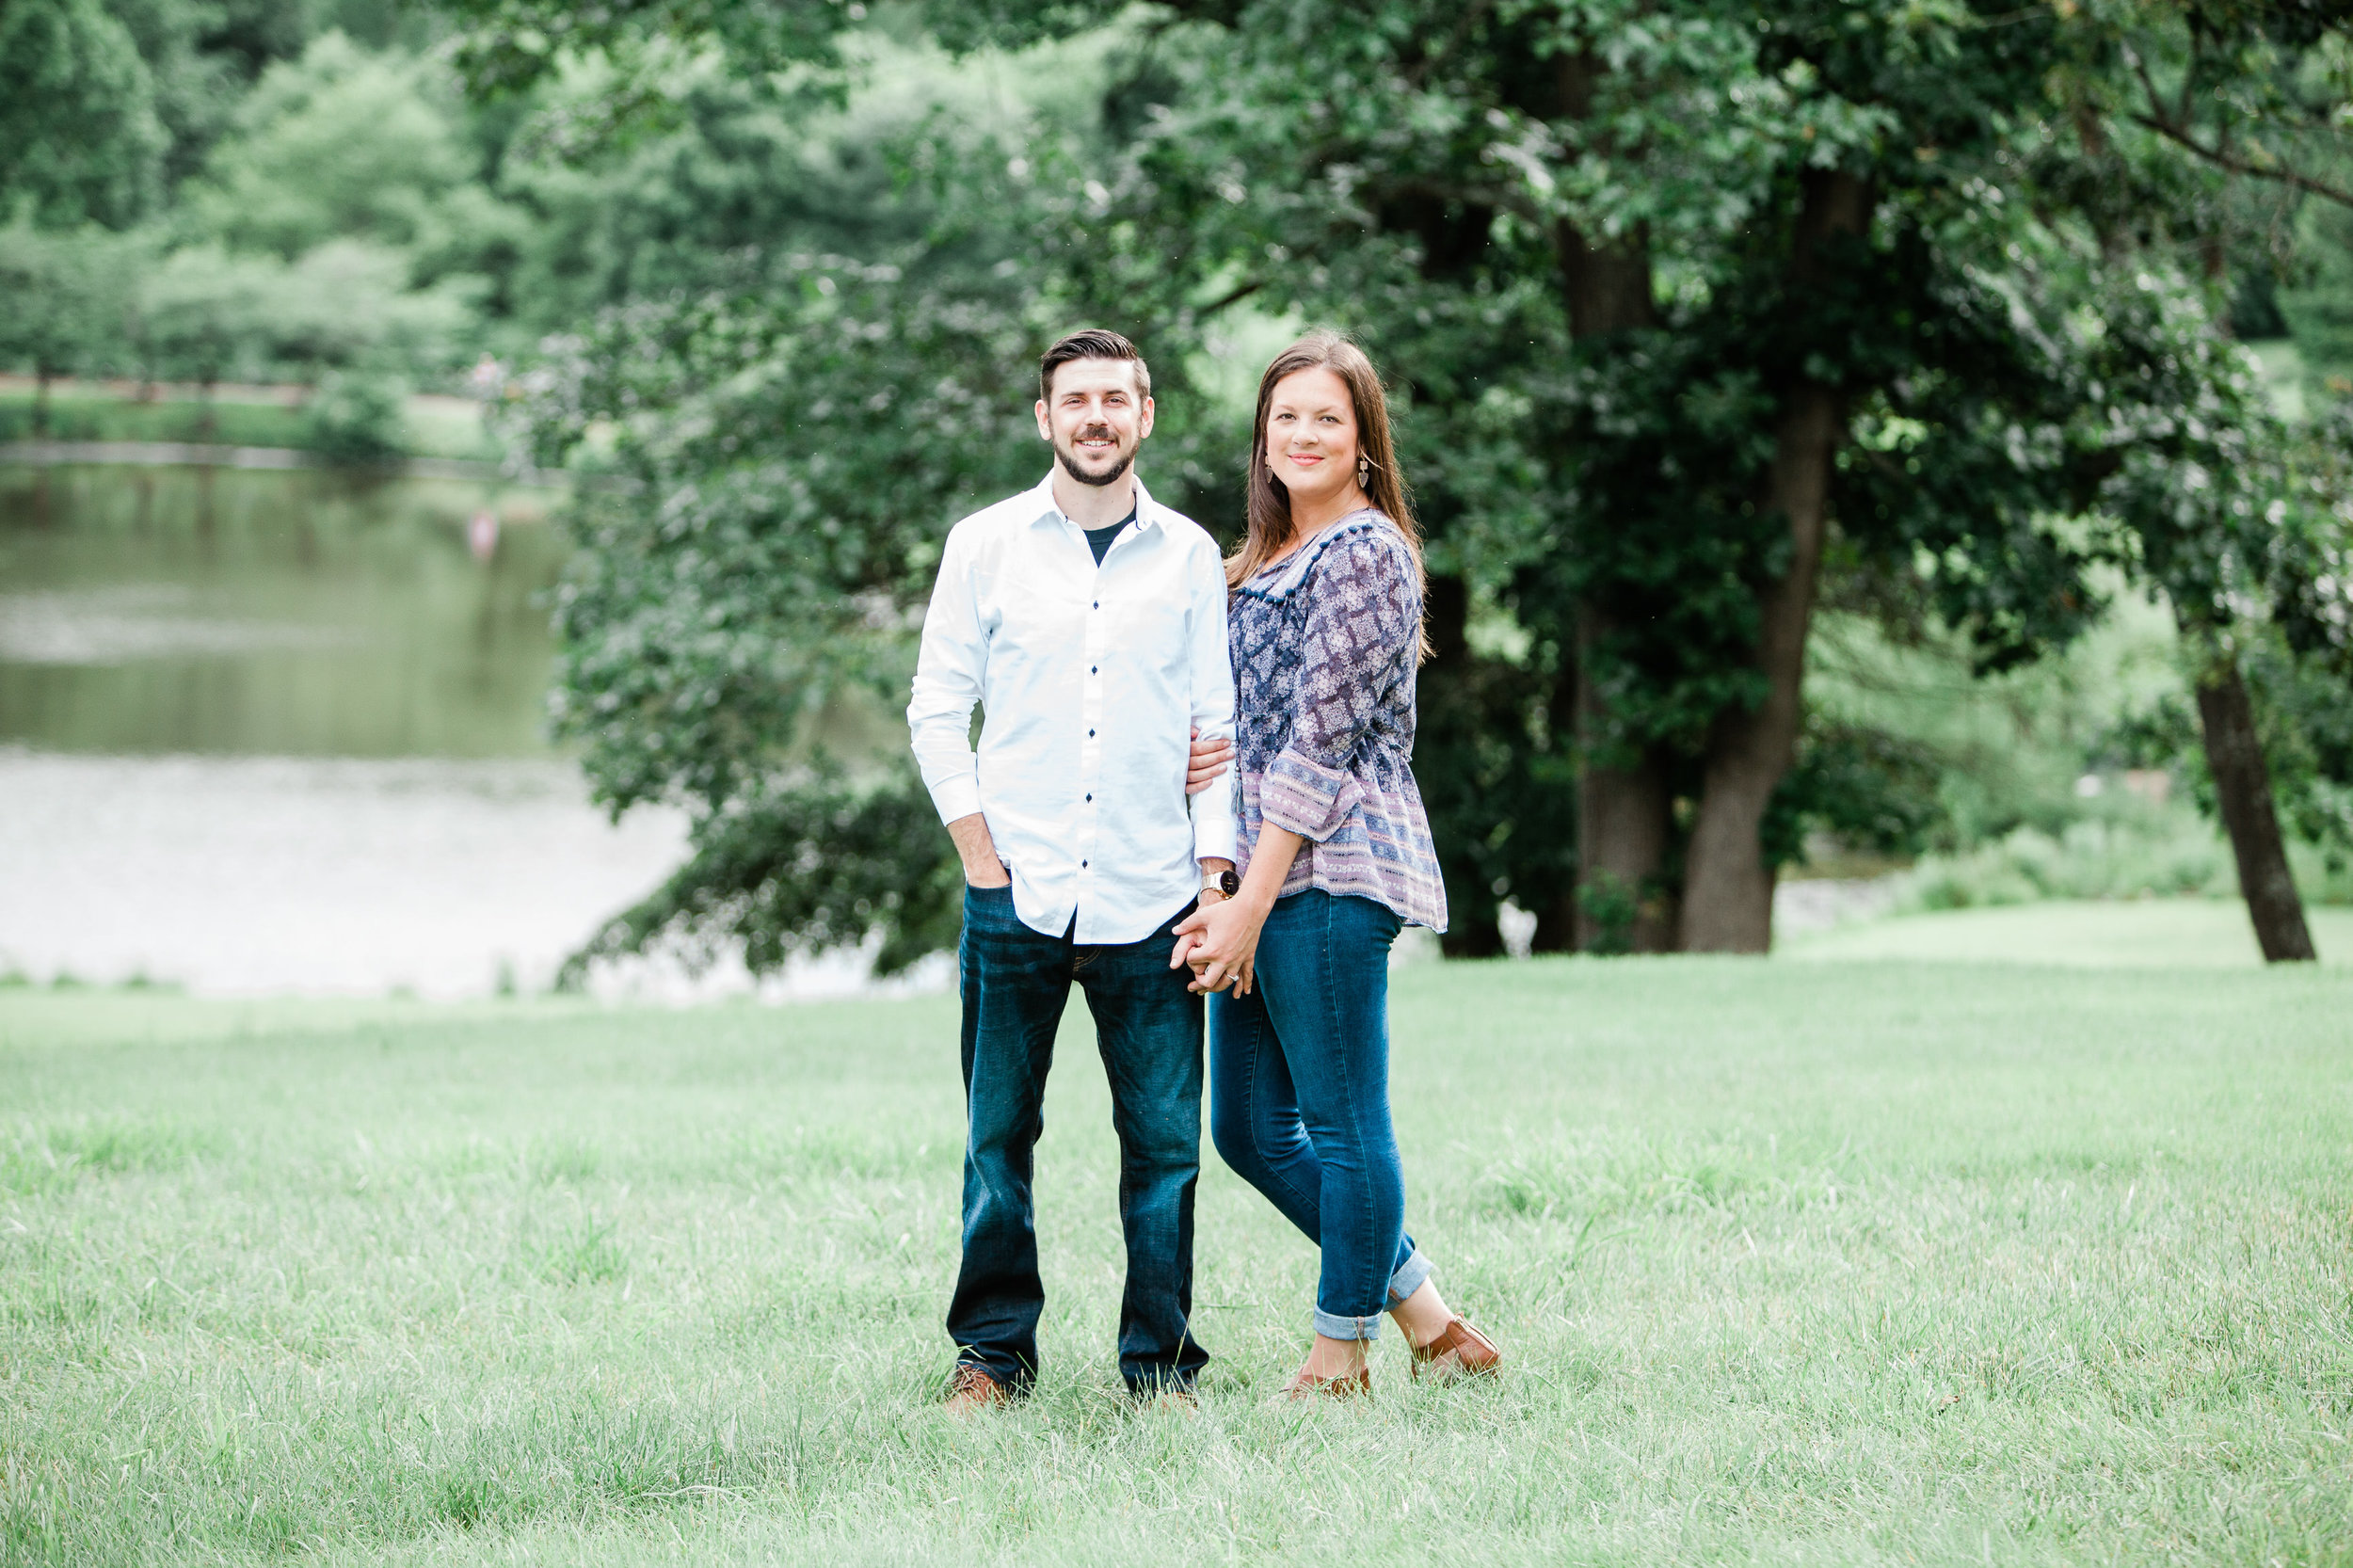 meadowlark_botanical_gardens_engagements-3601.jpg